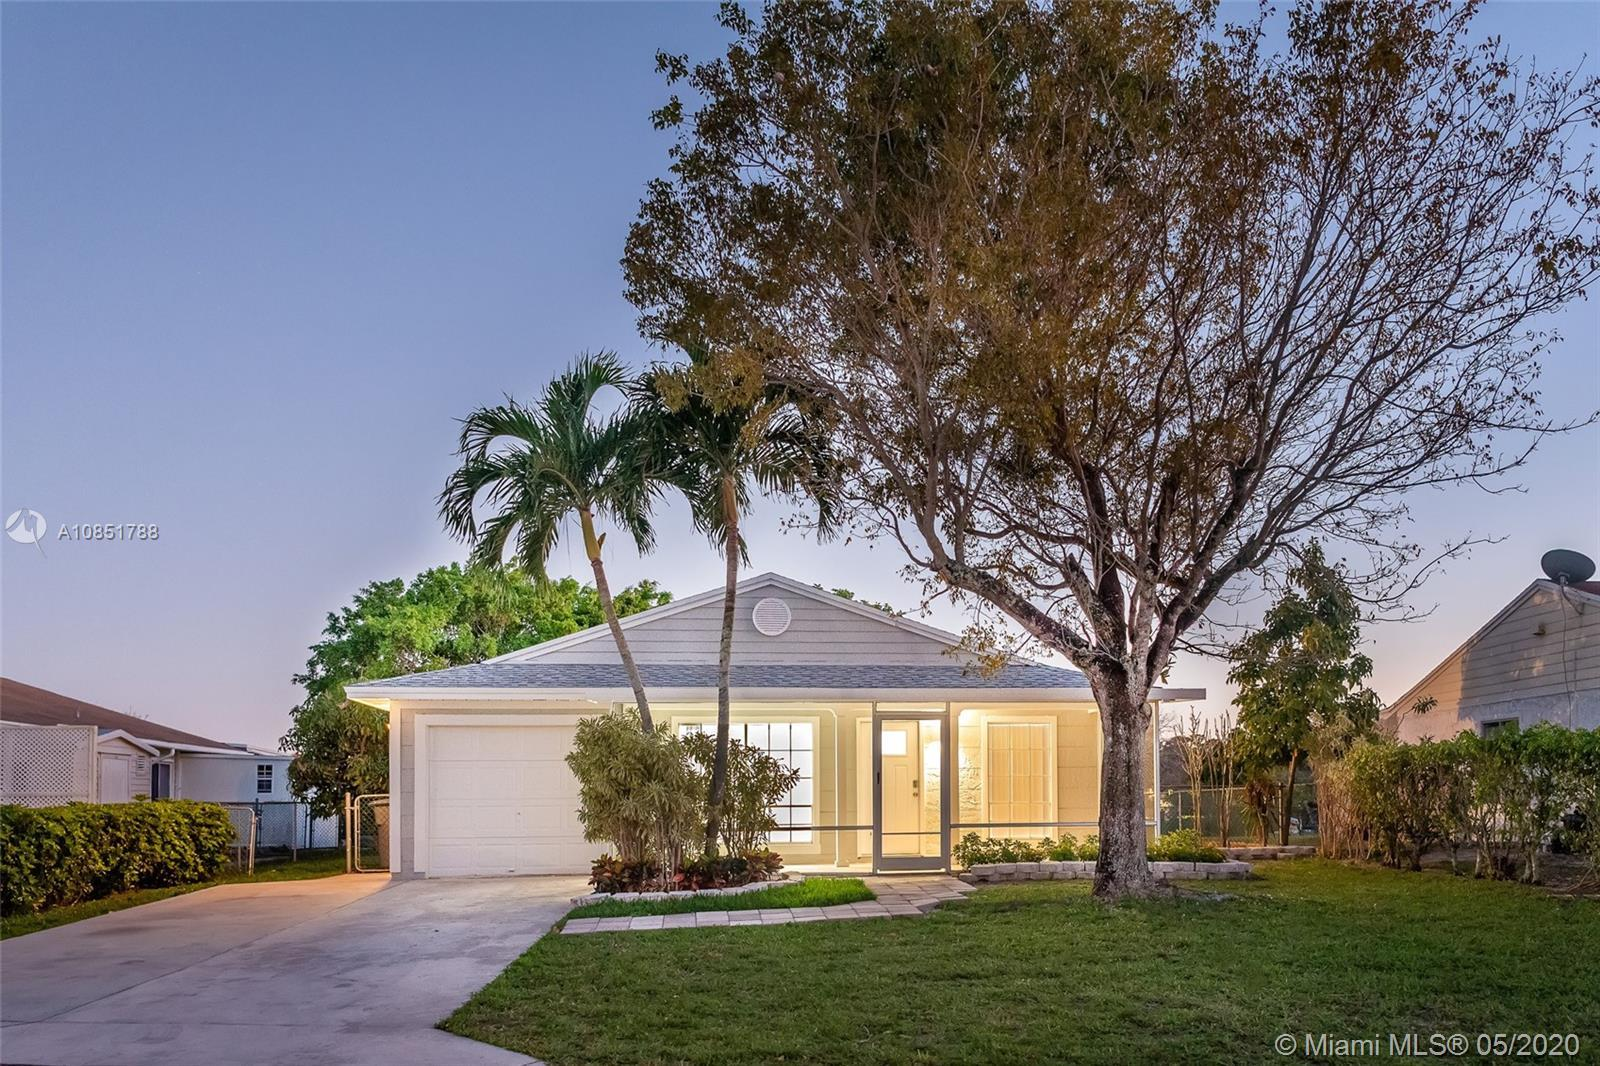 Beautiful 4 bedroom 2 bath 1 car garage in the heart of Boca Raton. Beautifully remodeled and update